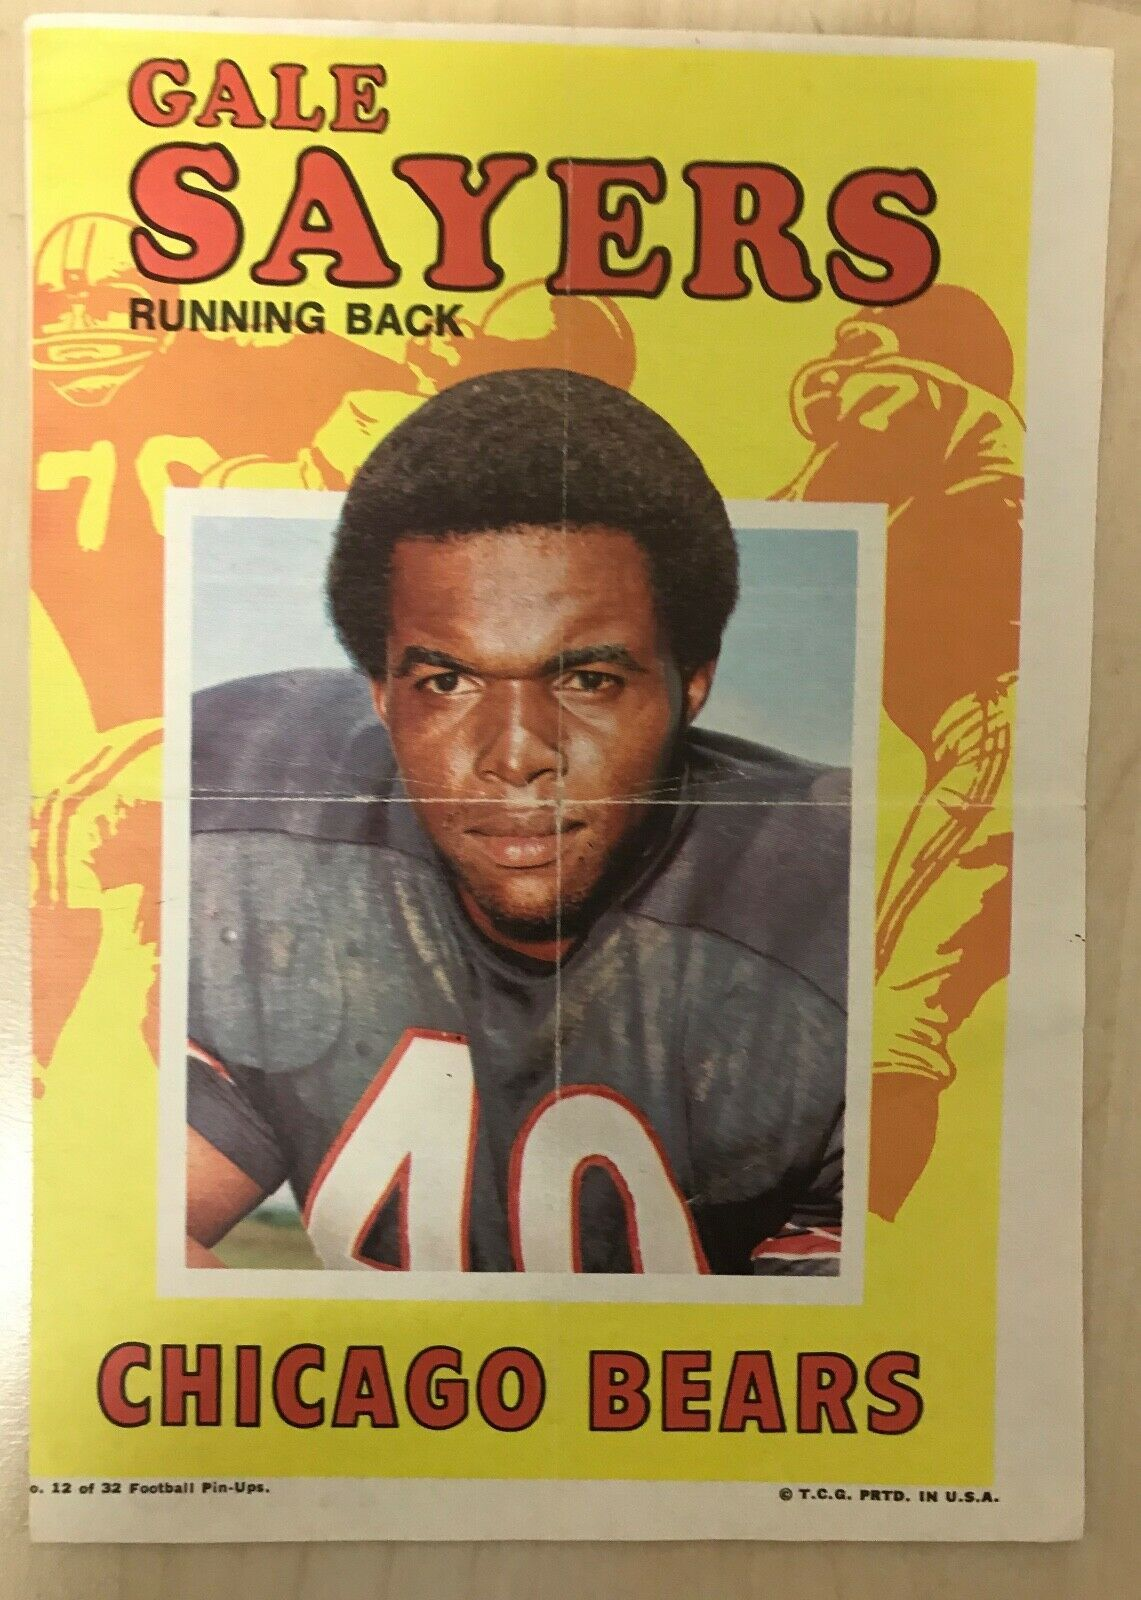 1971 Topps Football Pin-Ups Gale Sayers #12